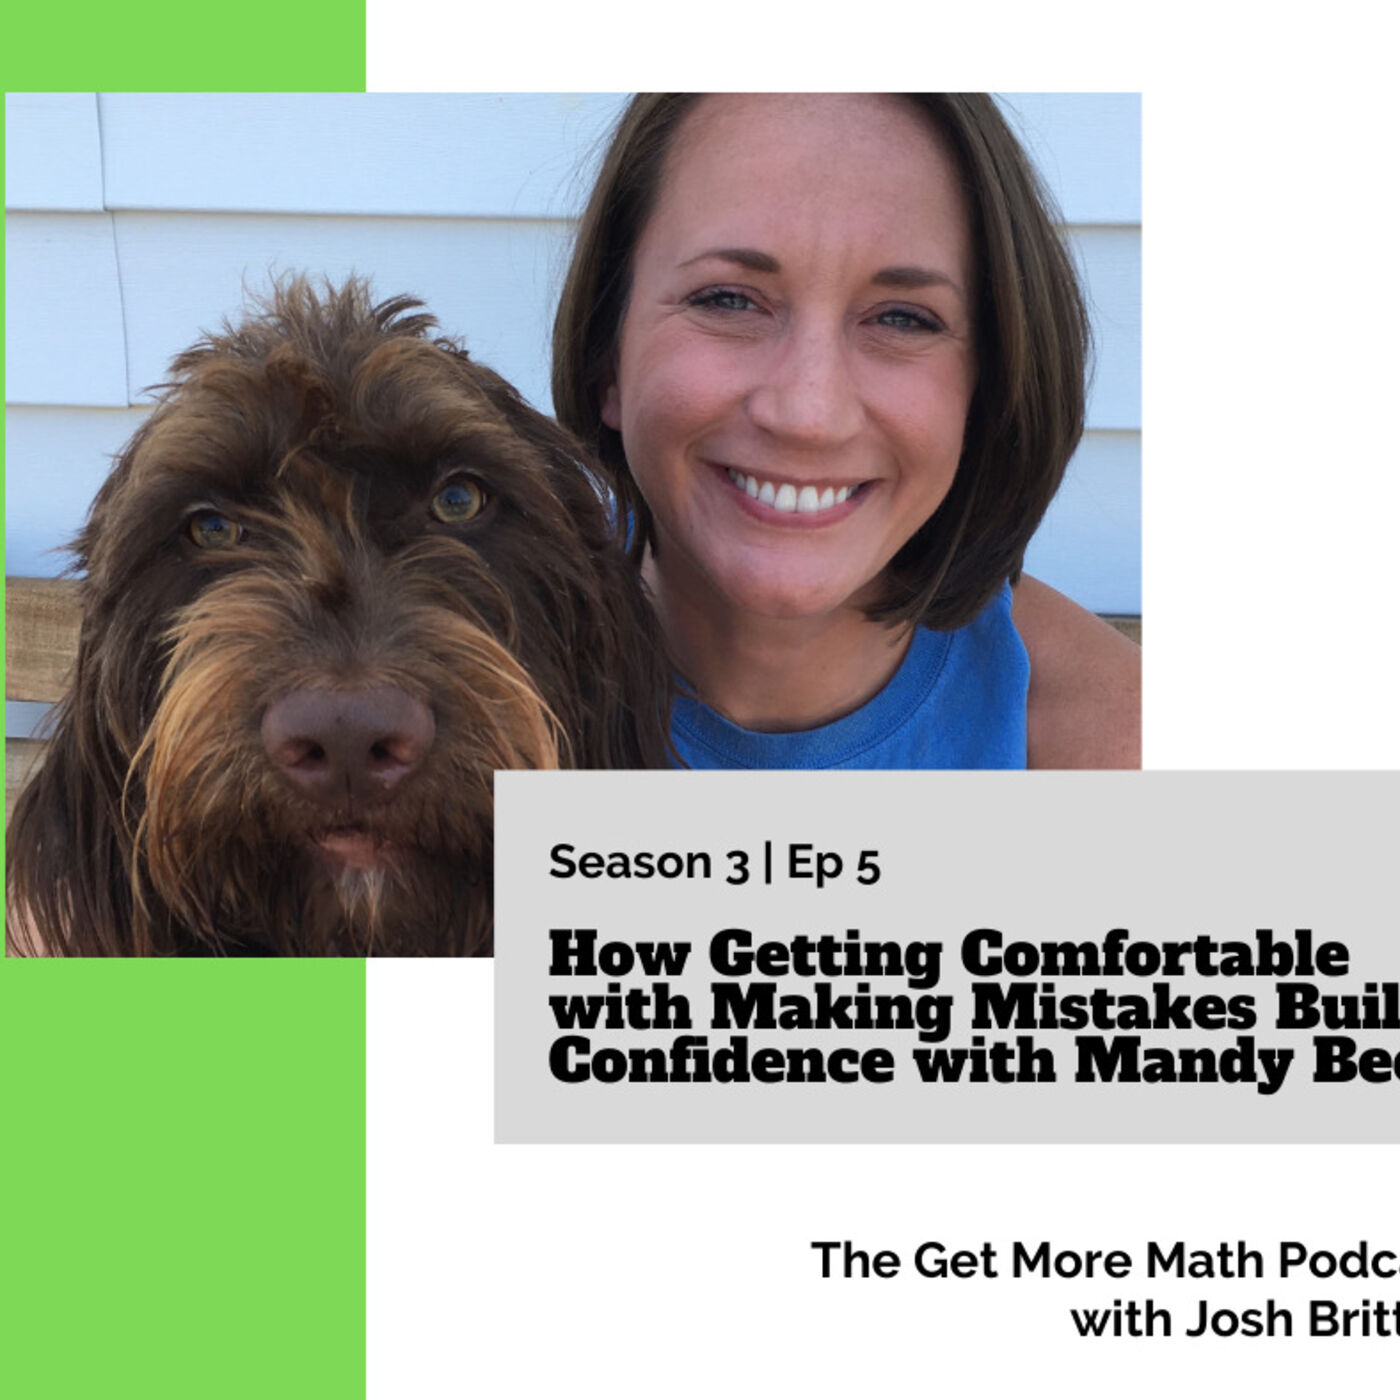 How Getting Comfortable with Making Mistakes Builds  Confidence with Mandy Beck